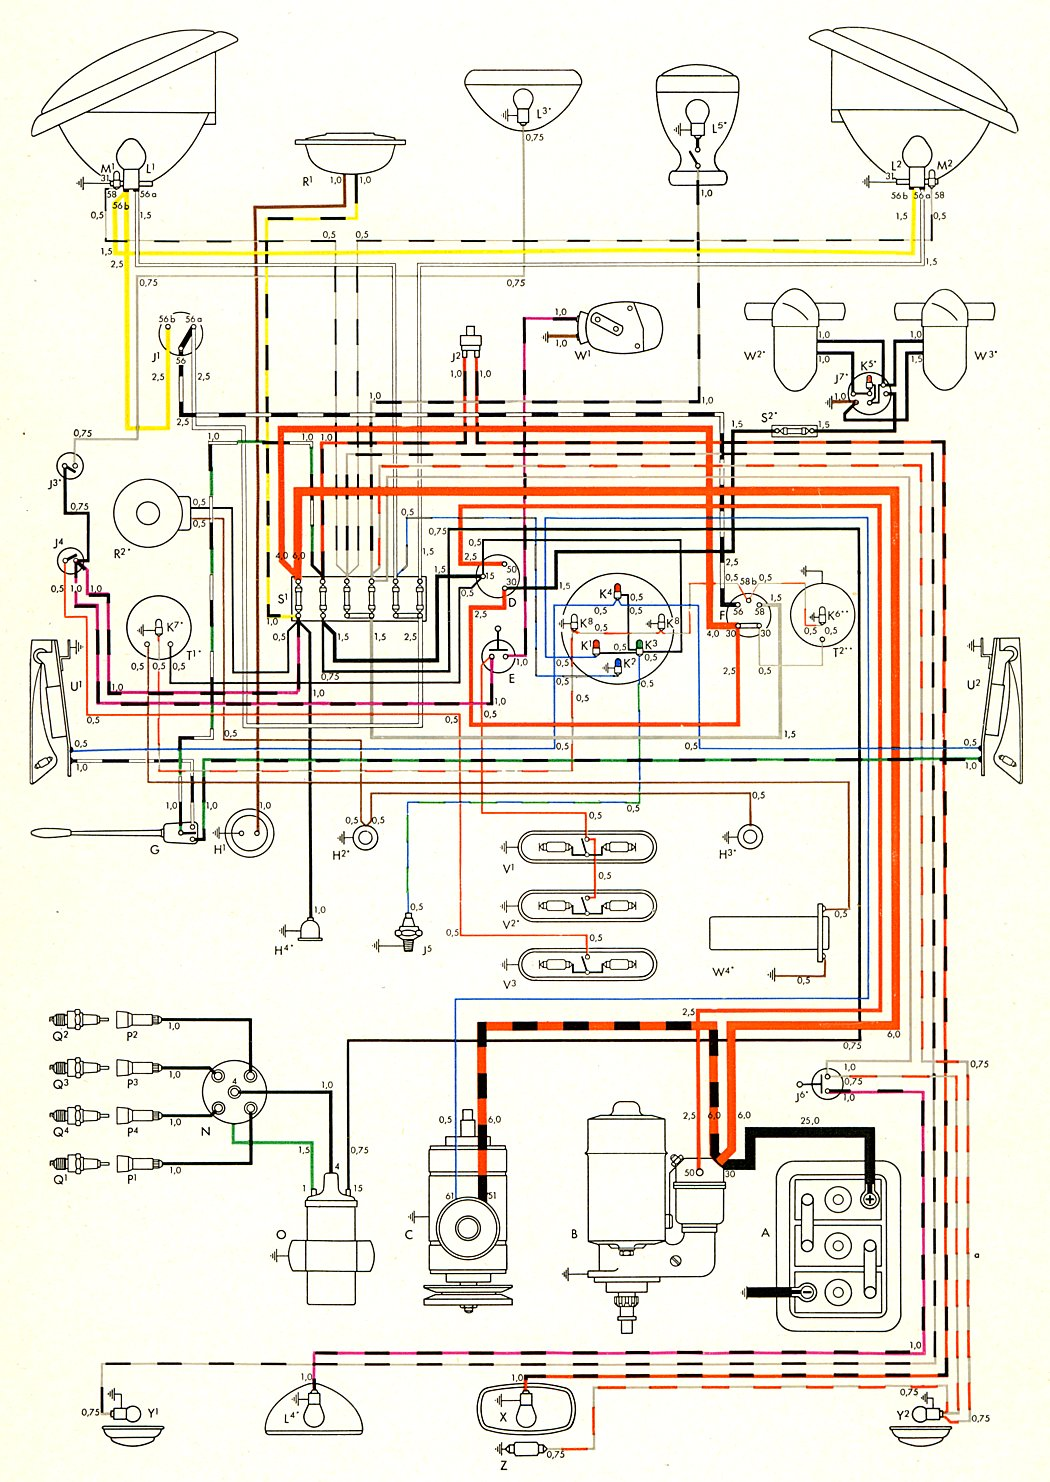 wire diagram 2005 bluebird school bus wiring library1957 bus wiring diagram thegoldenbug com rh thegoldenbug com bluebird bus wiring diagrams scania bus wiring